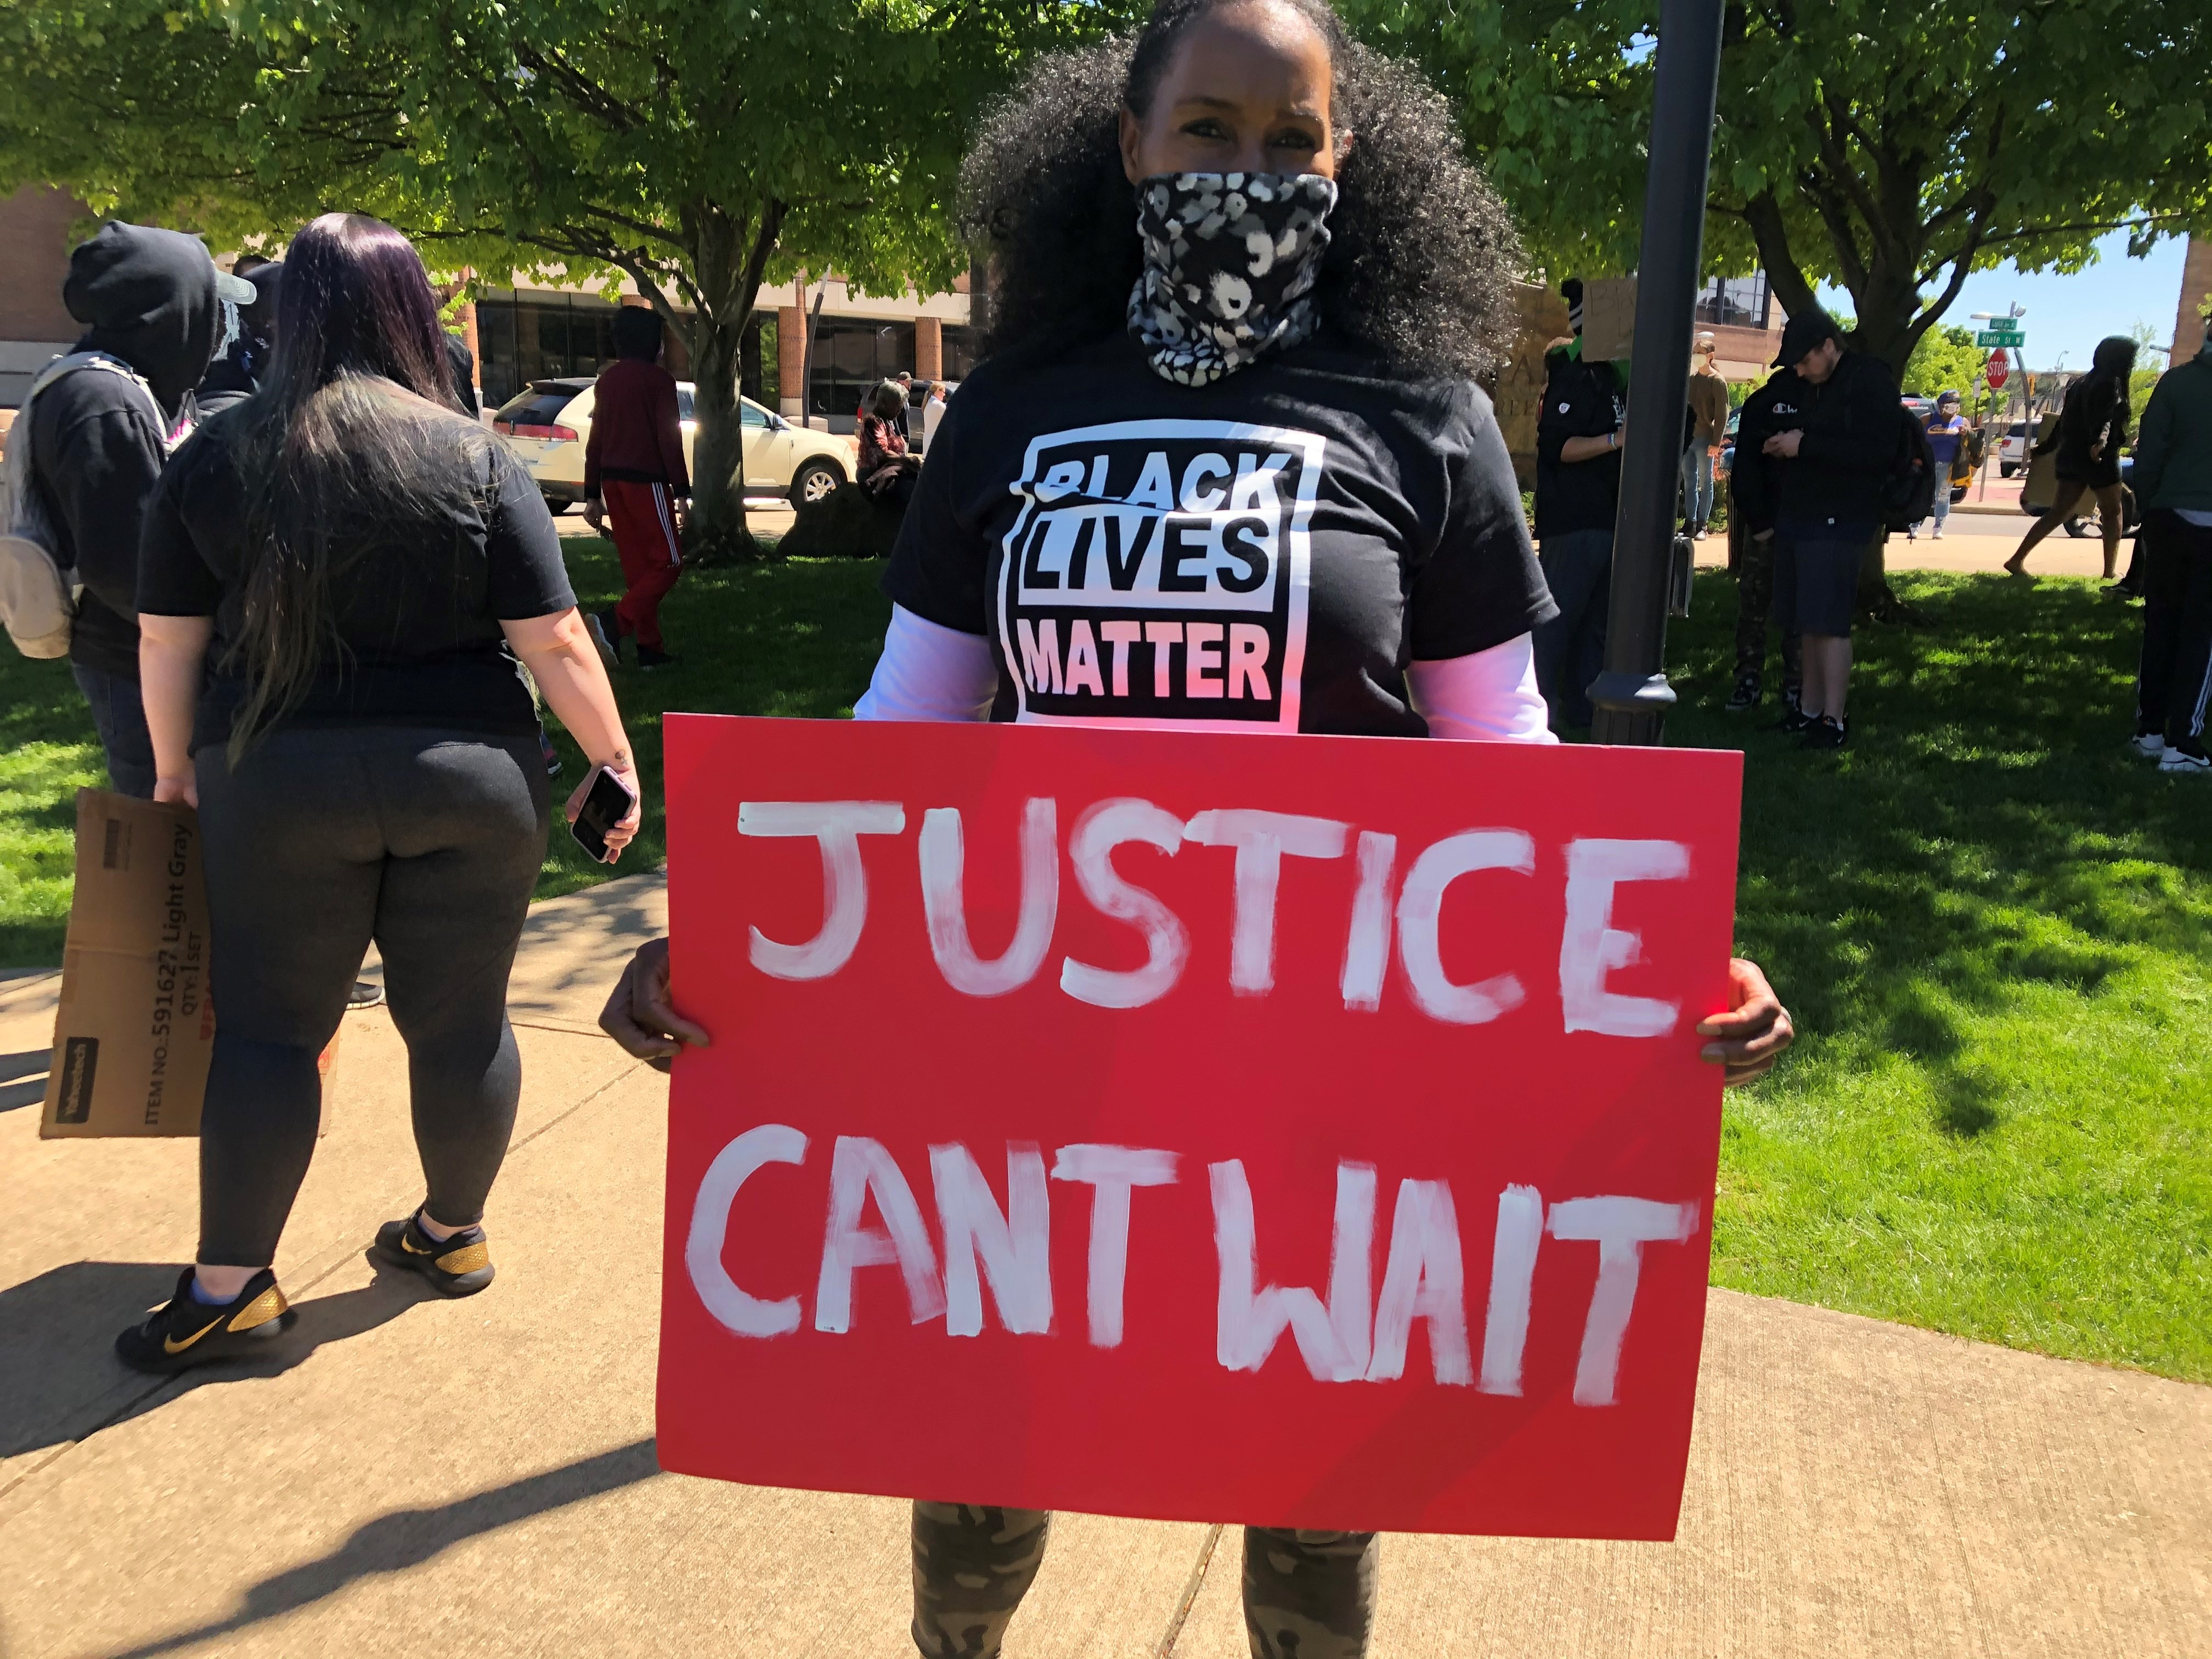 On Sunday, May 31, 2020 people gathered in Battle Creek to protest the death of George Floyd. (WWMT/Sam Knef)